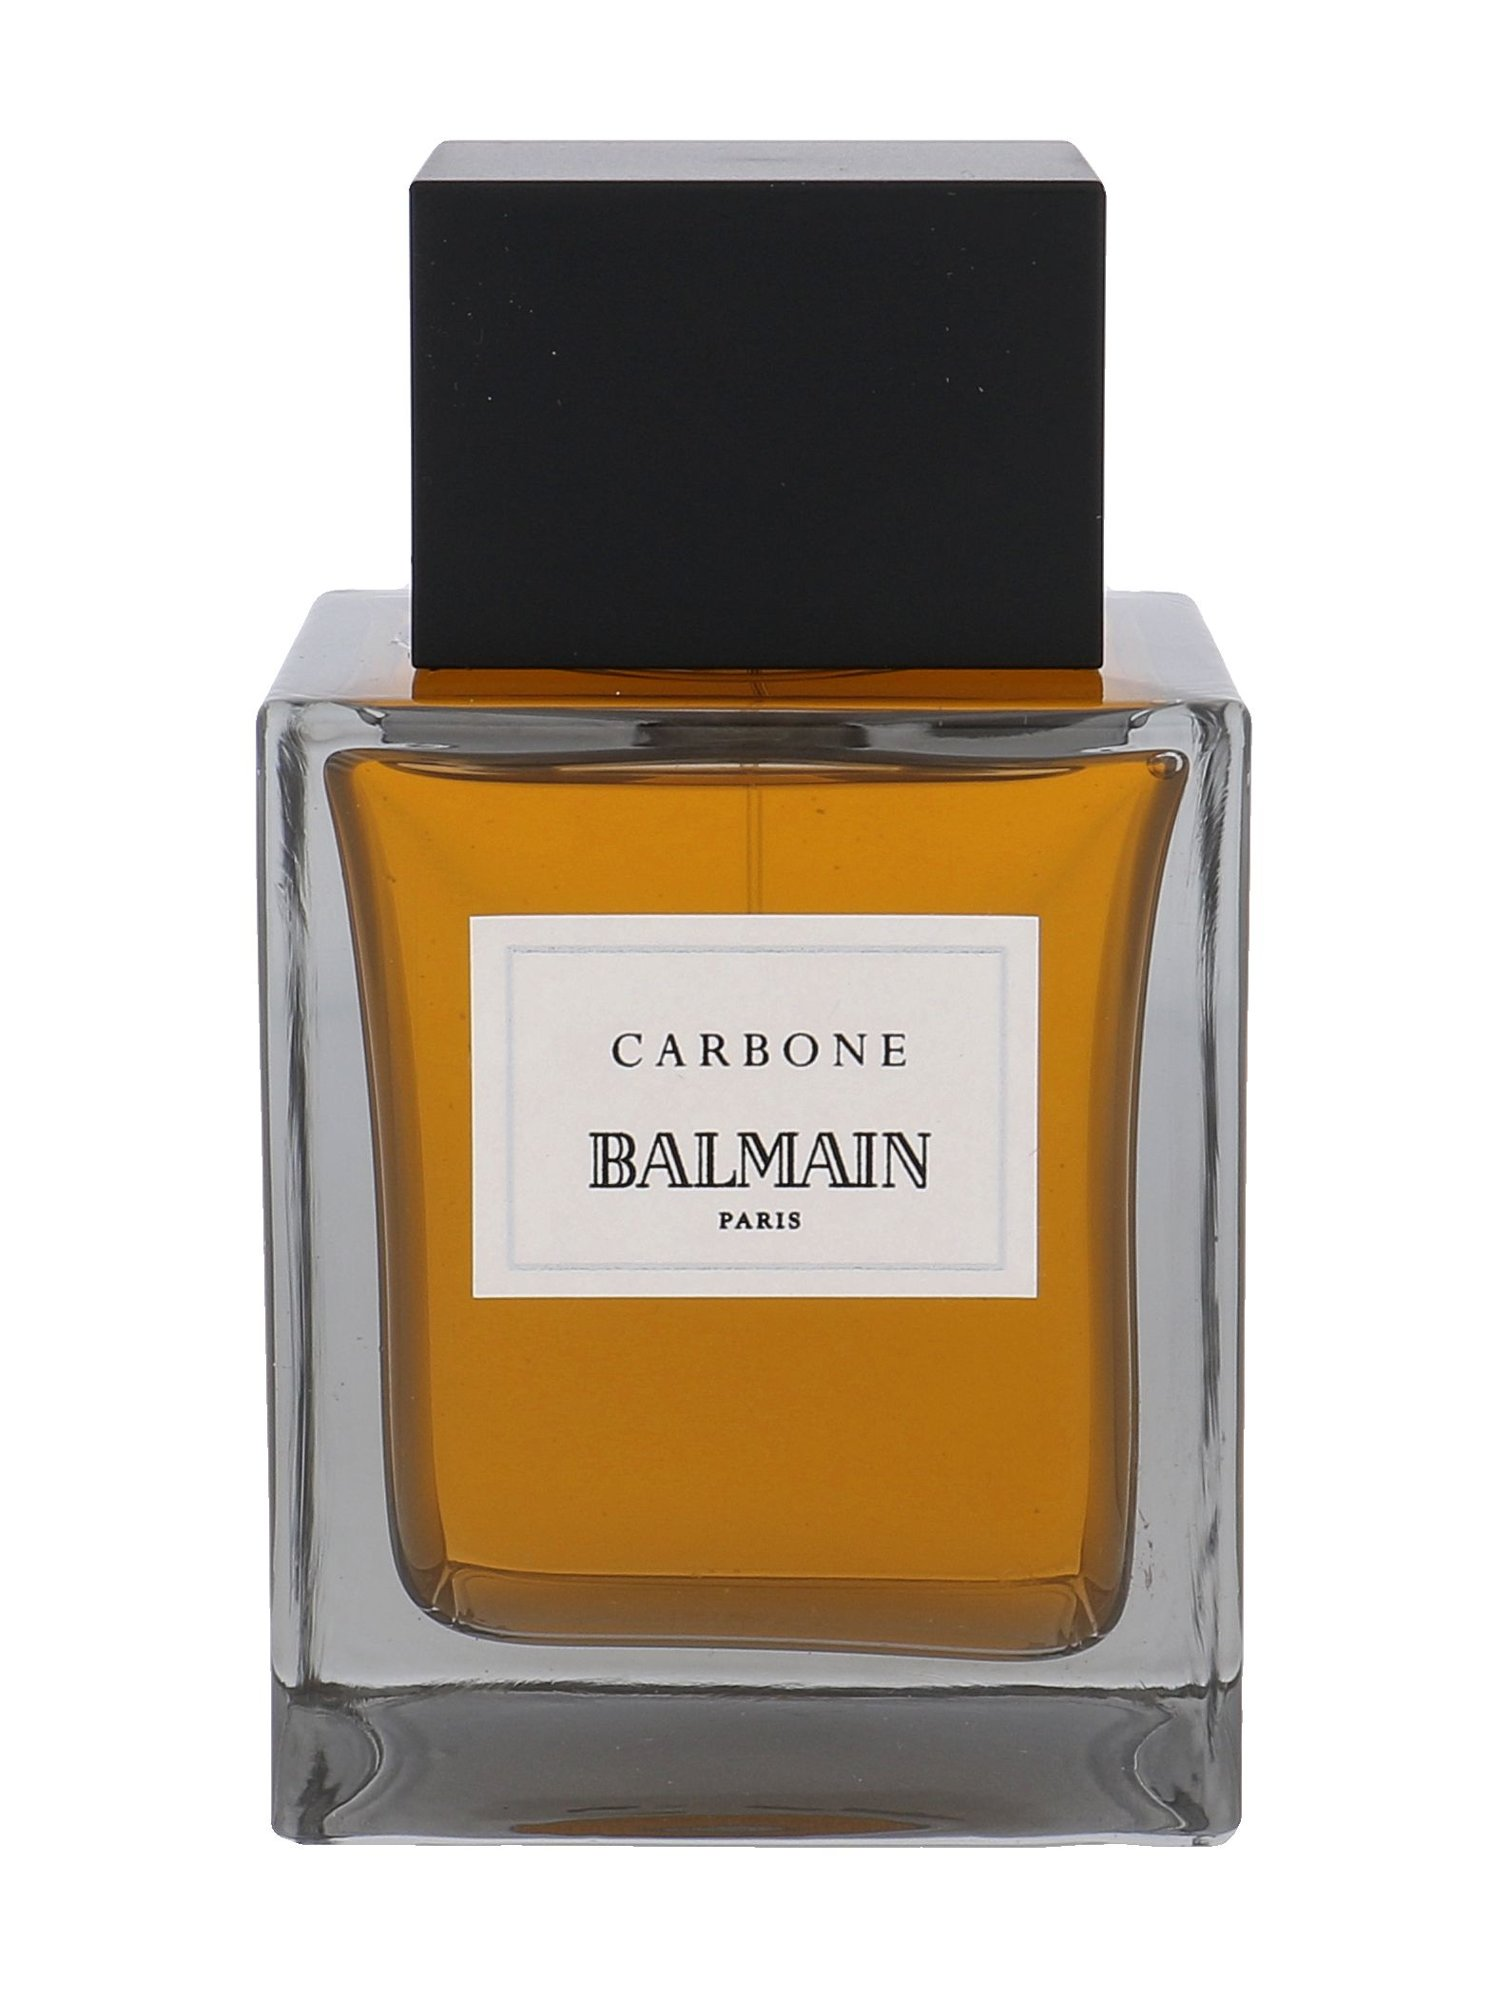 Balmain Carbone EDT 100ml